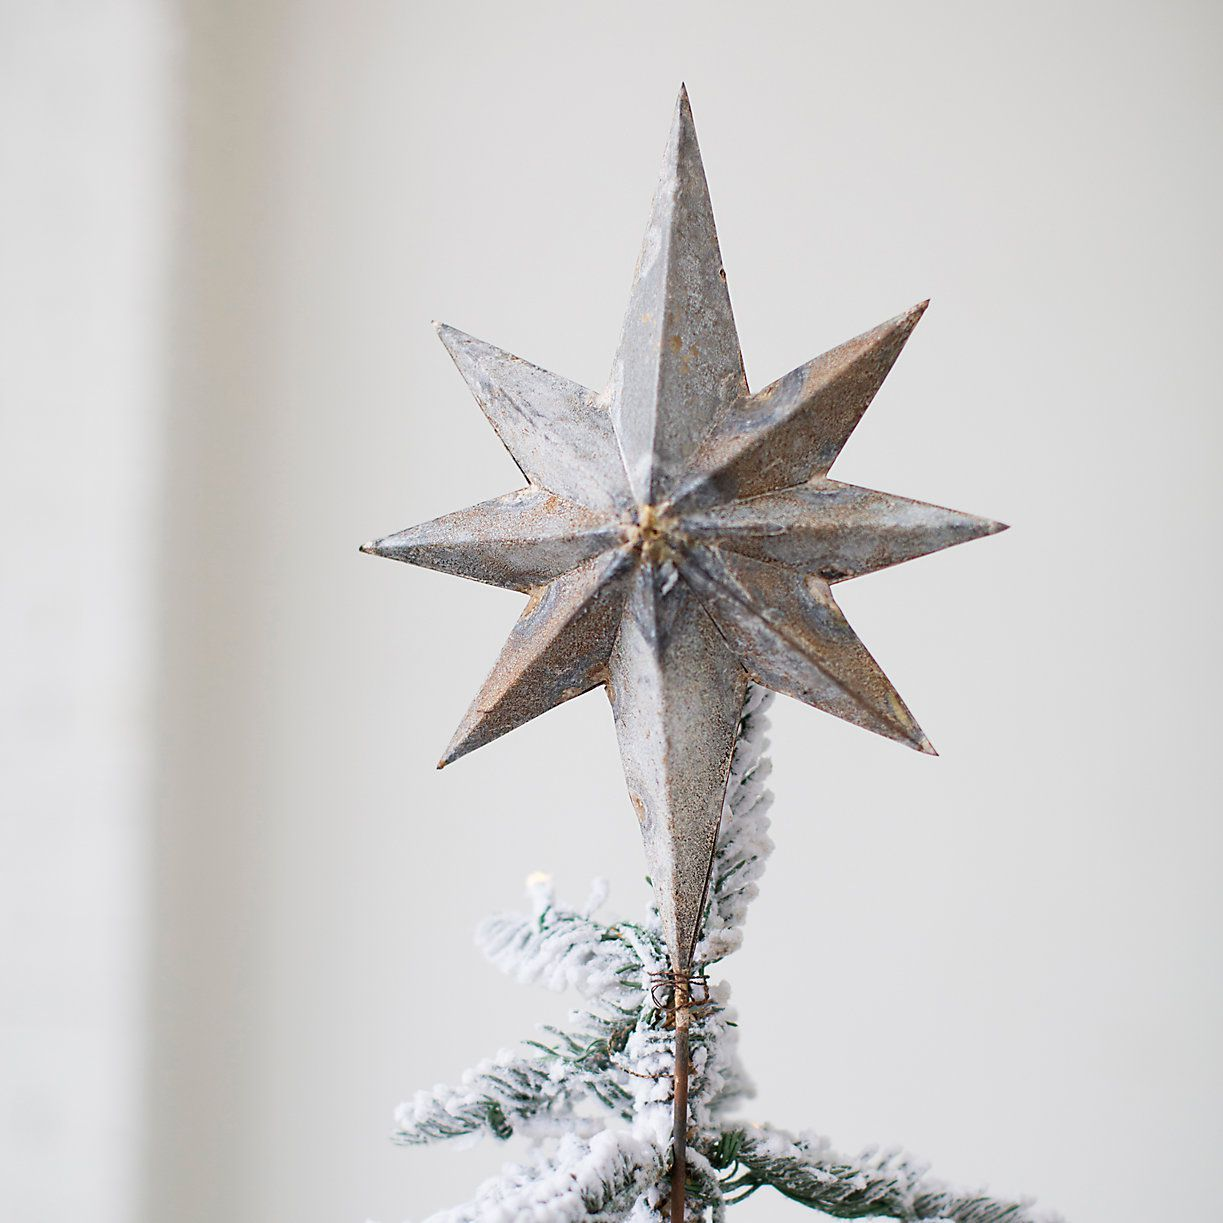 35 Unique Christmas Tree Toppers - Cool Ideas for Tree Toppers